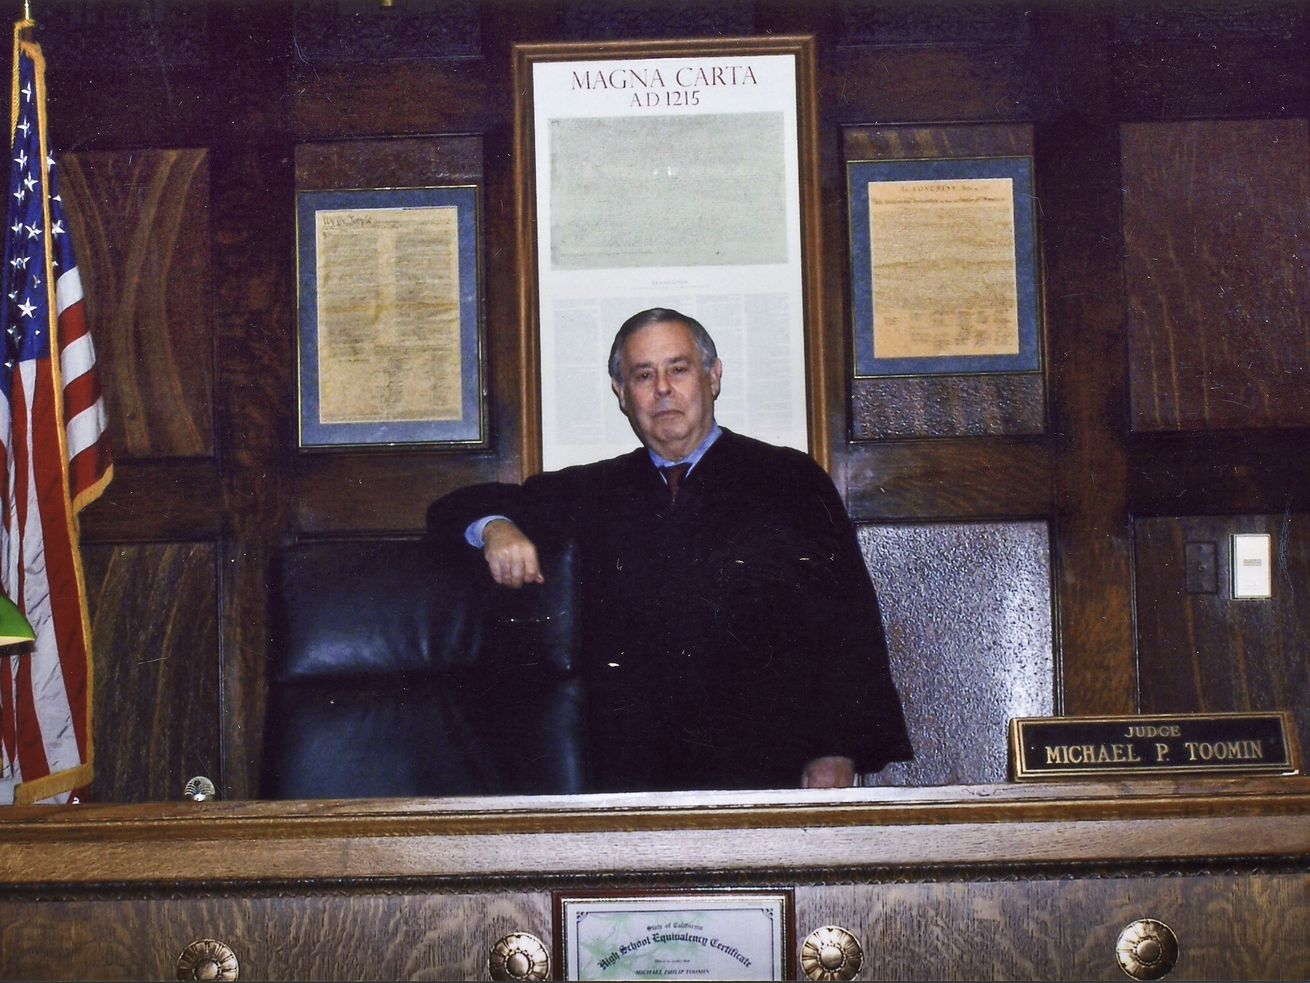 Cook County Circuit Court Judge Michael P. Toomin on the bench at 26th & California in 2012.